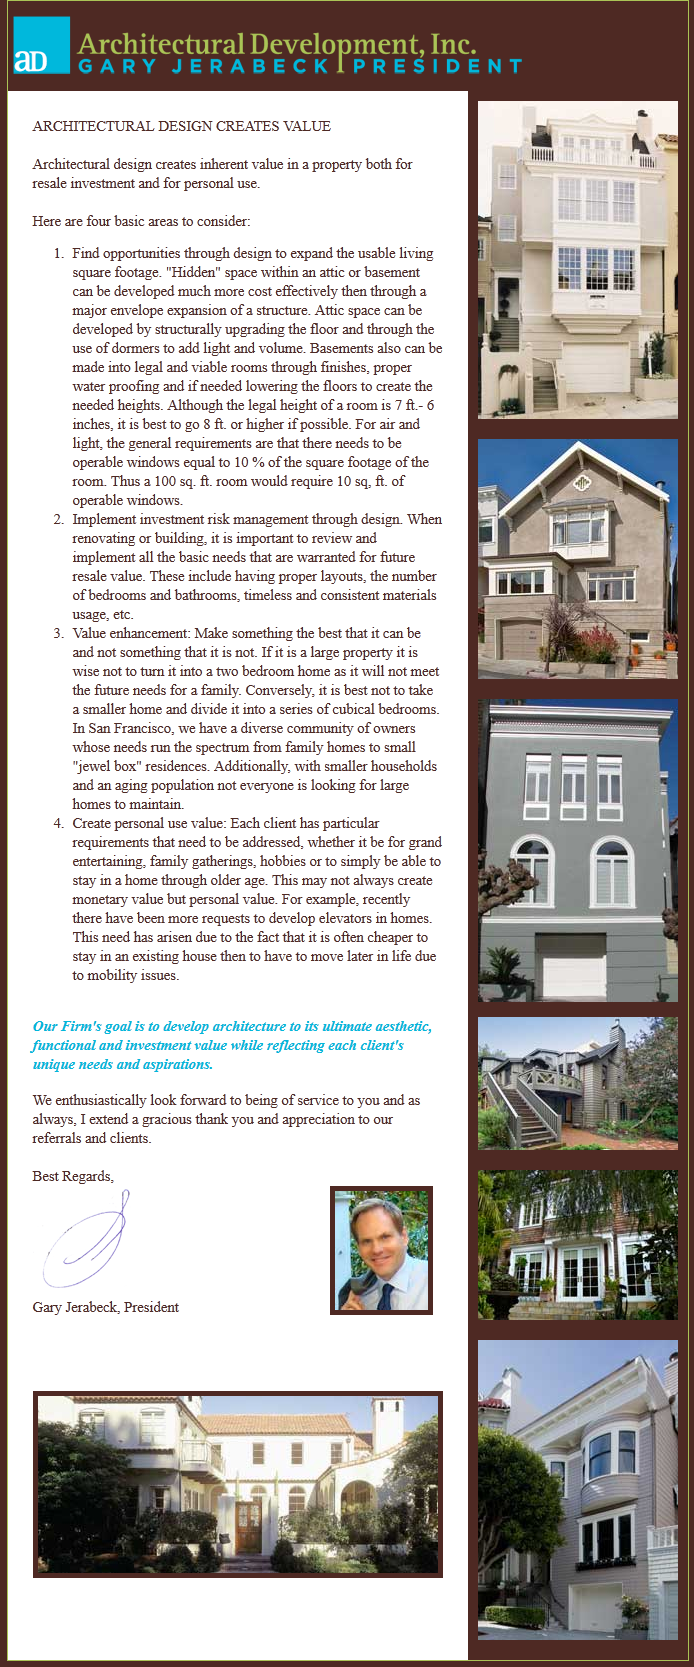 Architectural Development, Inc., Newsletter 5, August 2012